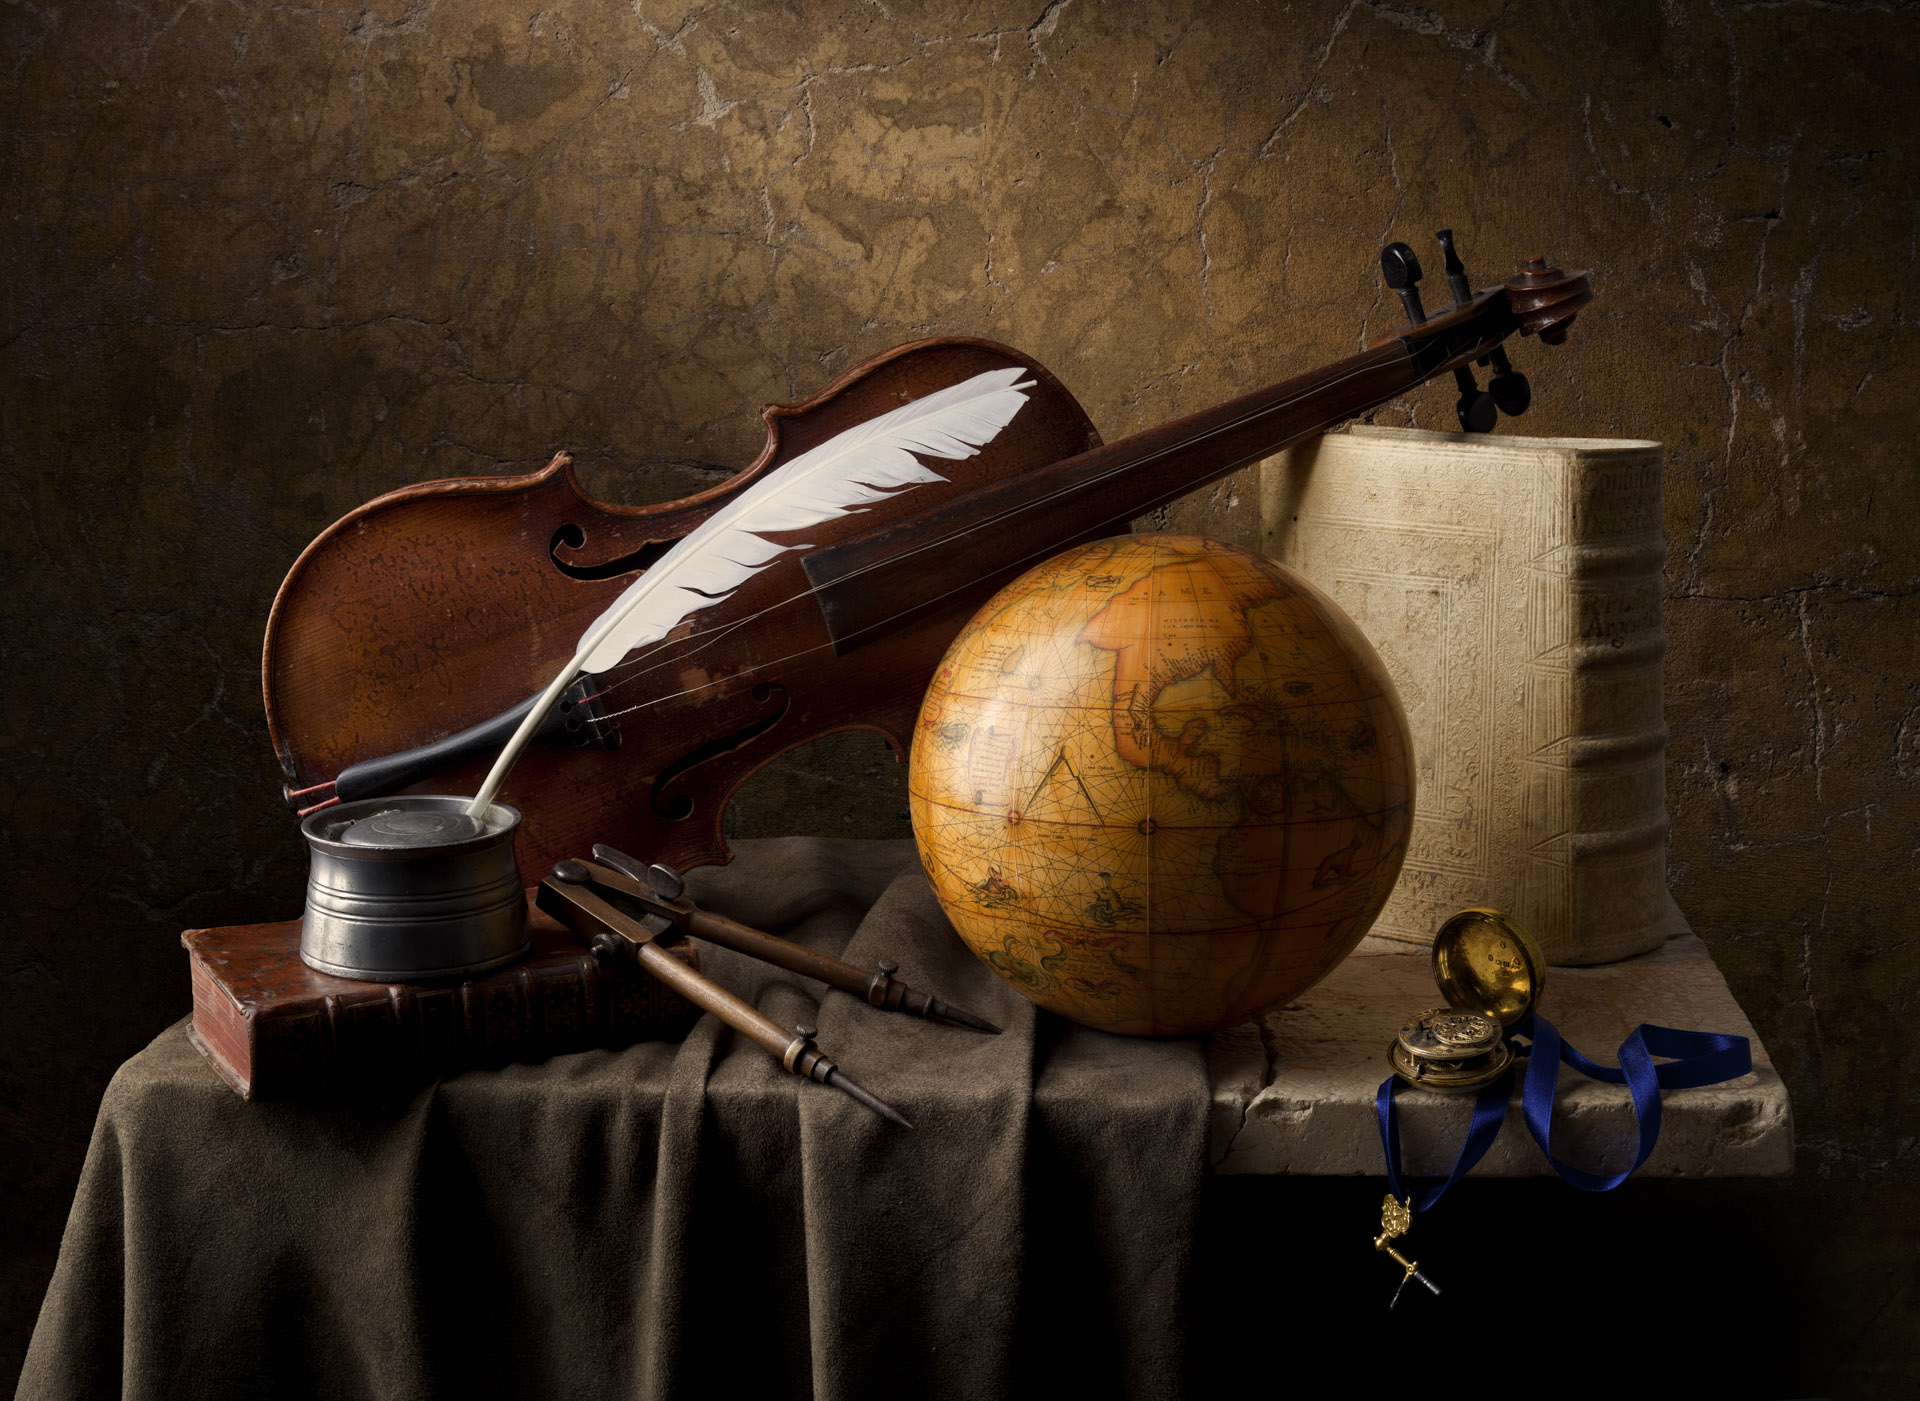 Still life with quill and globe